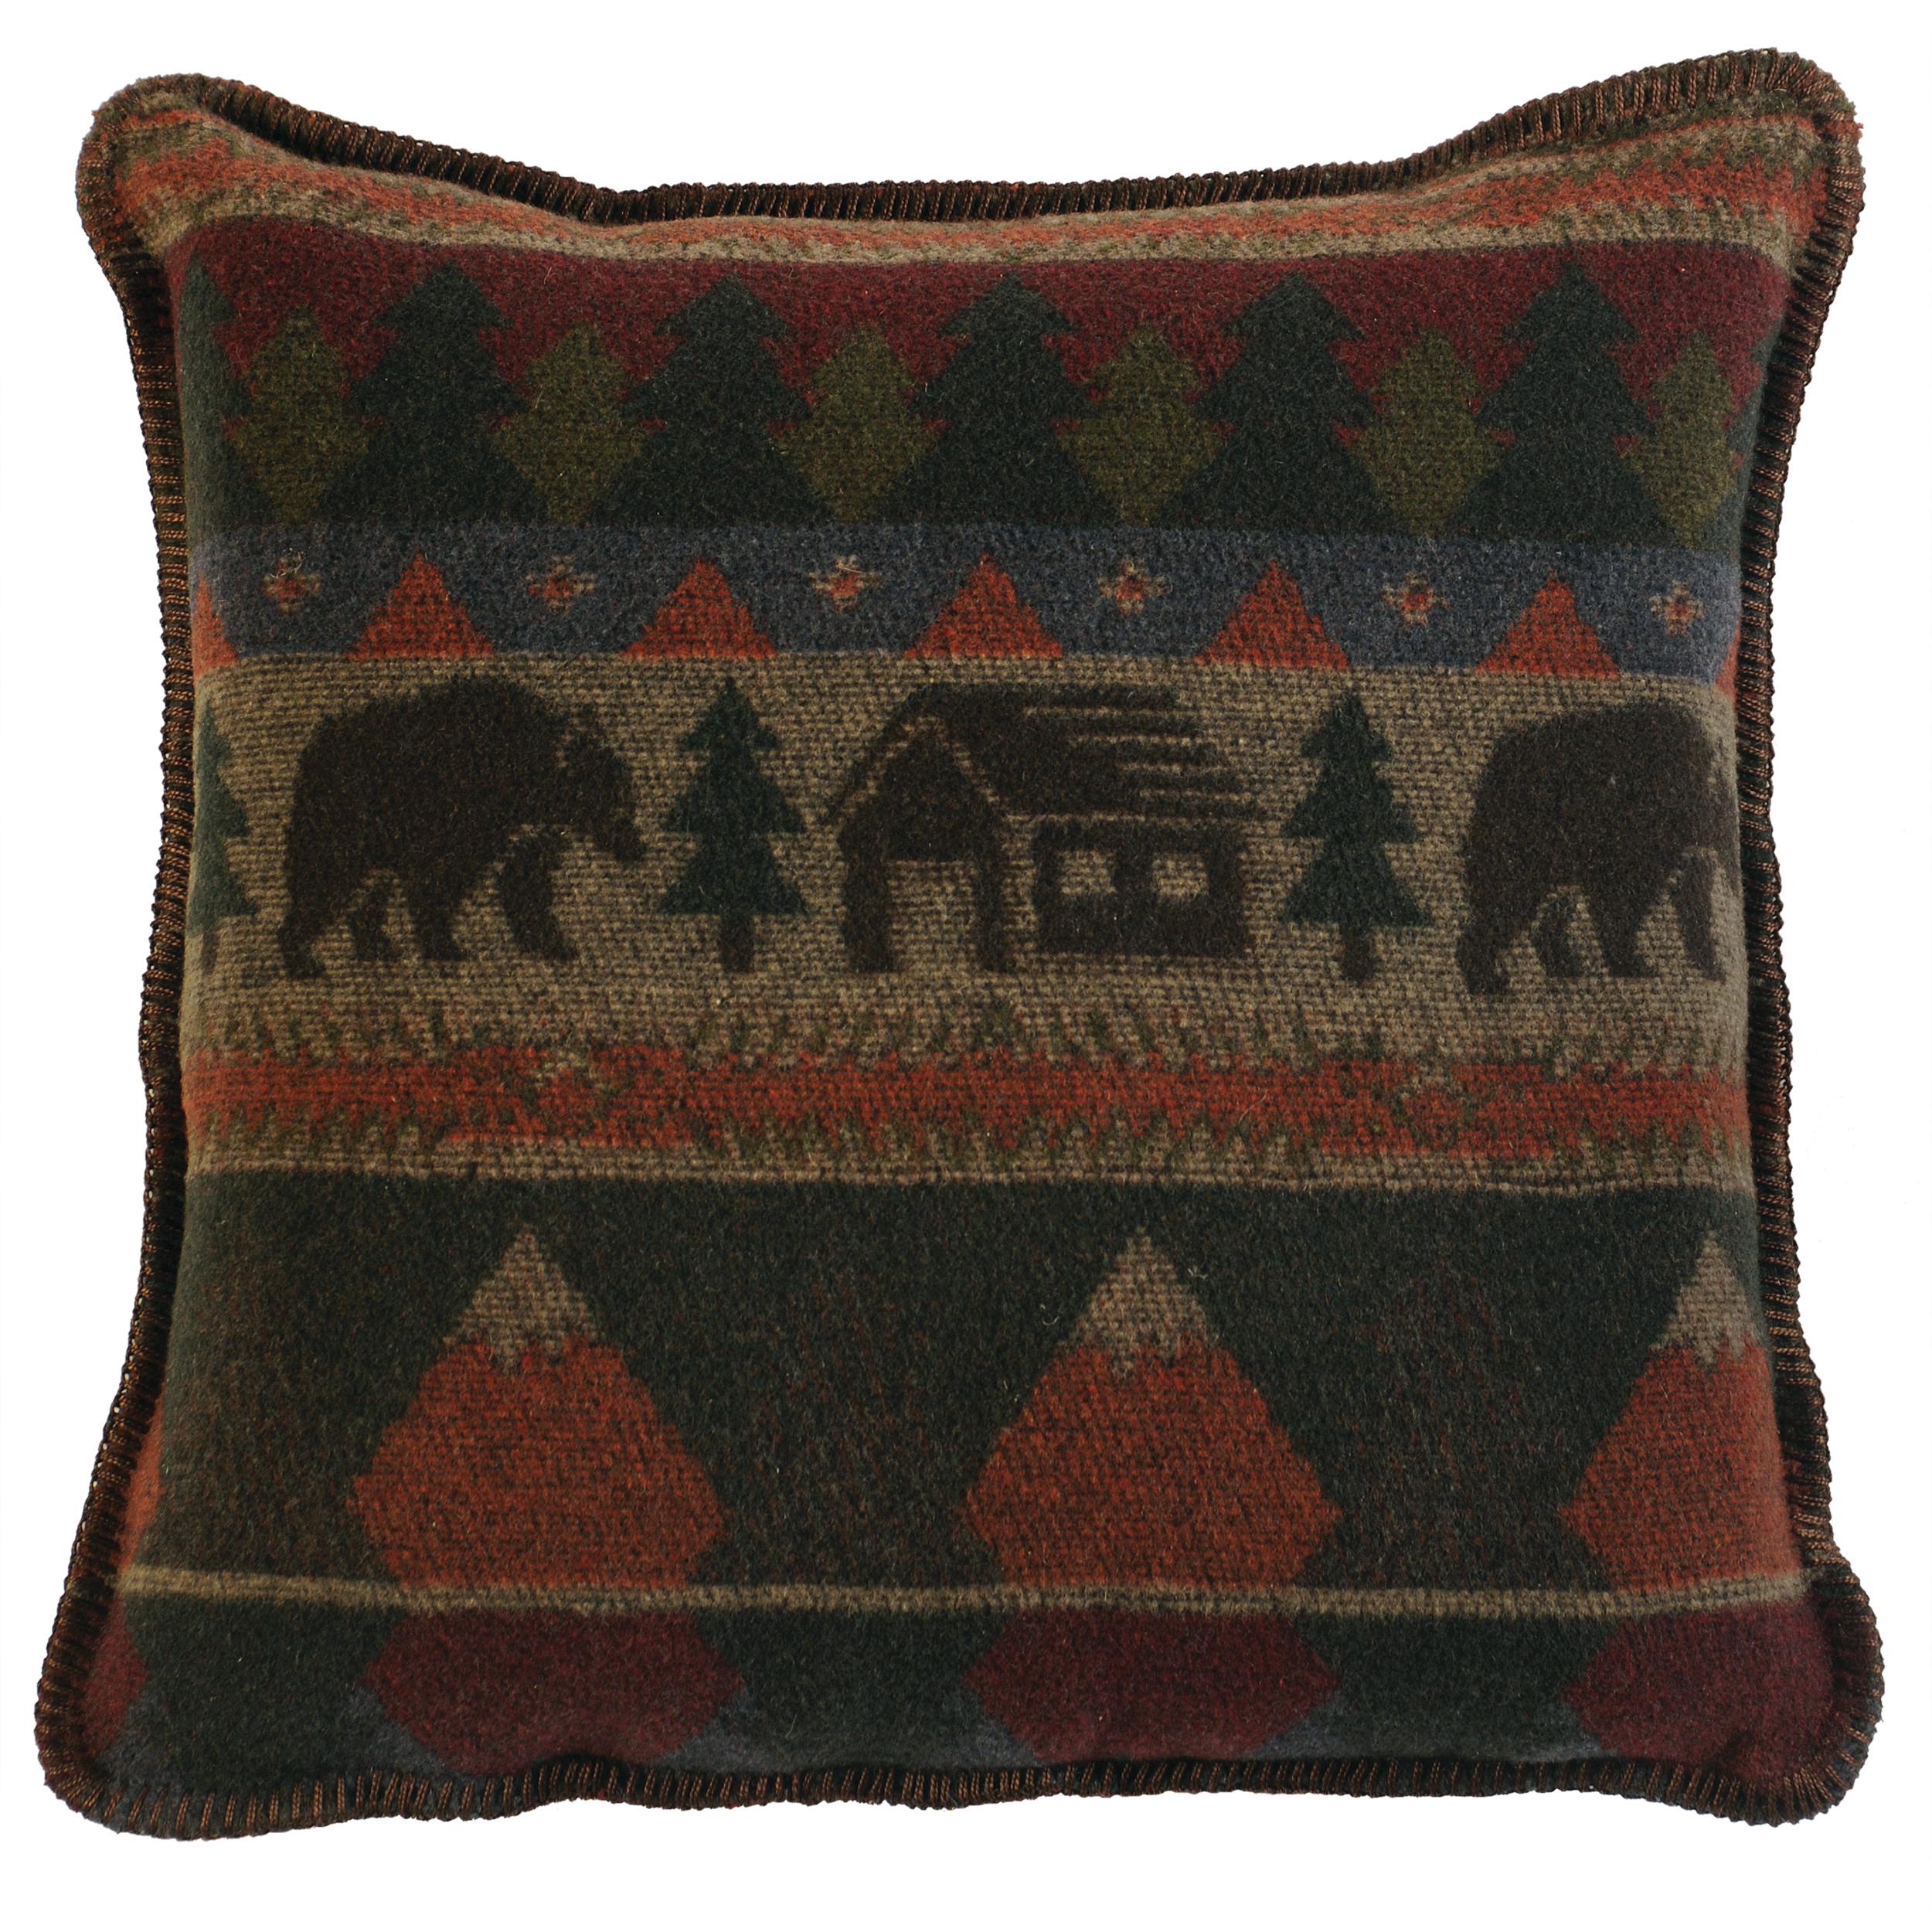 Cabin Bear Pillow - 20